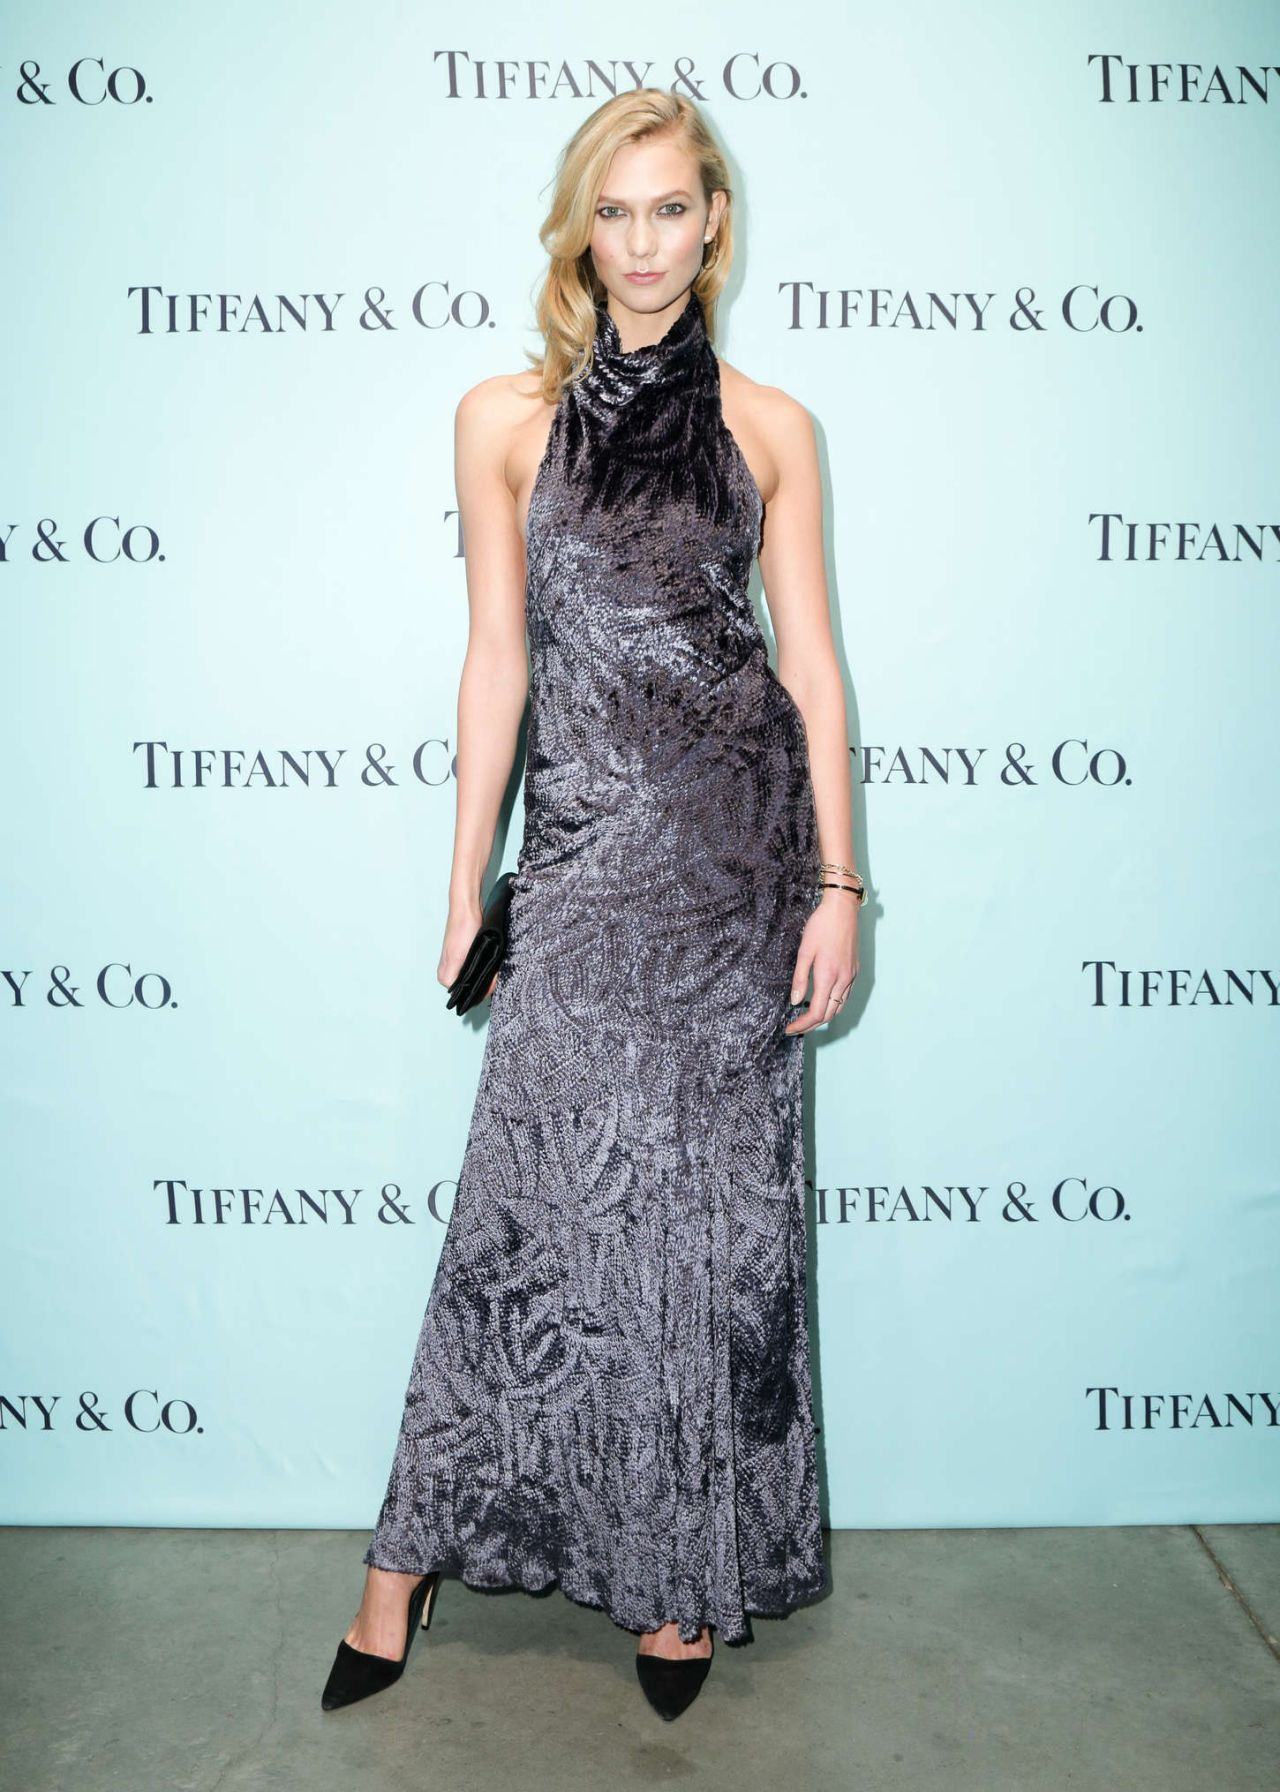 Karlie Kloss - The Tiffany T Train Experience Opening in New York - November 2014